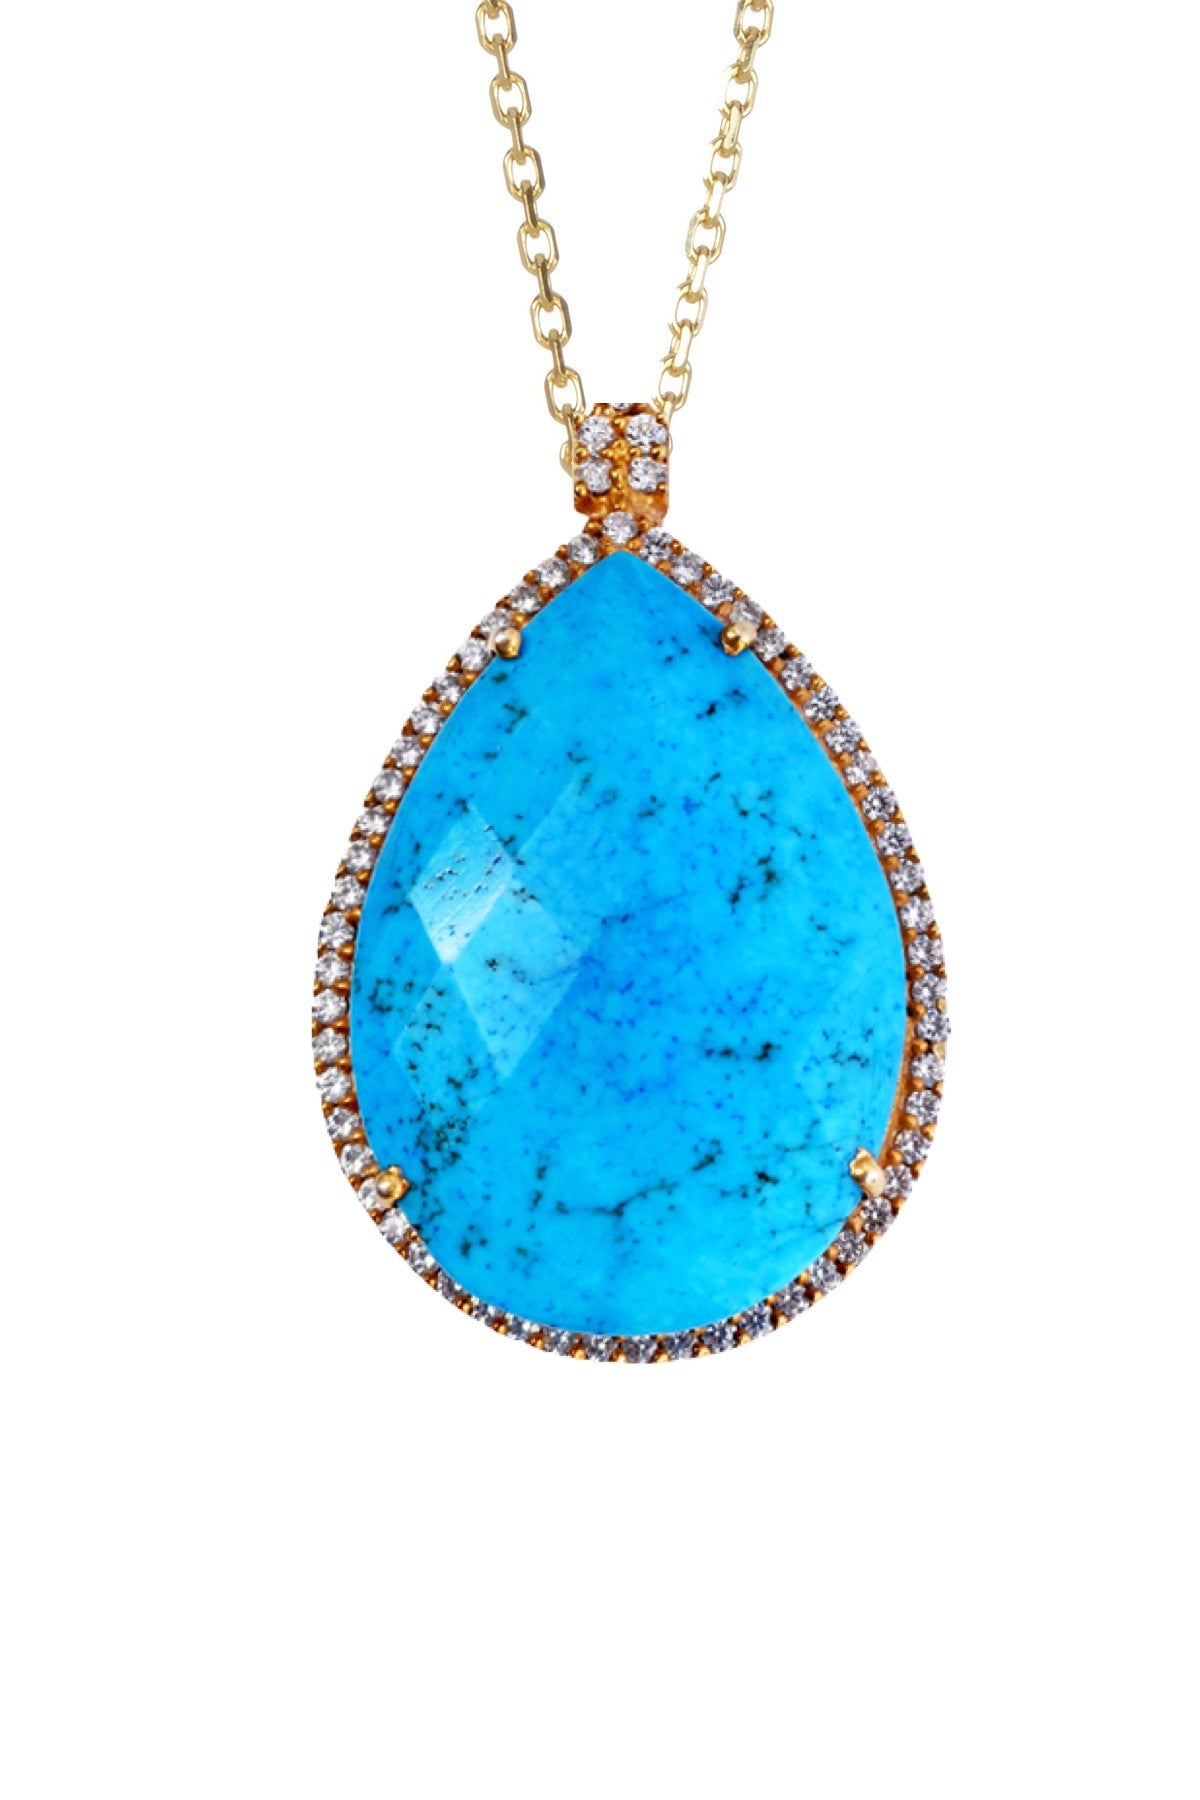 18k Gold Turquoise Embelished Pear Drop Necklace